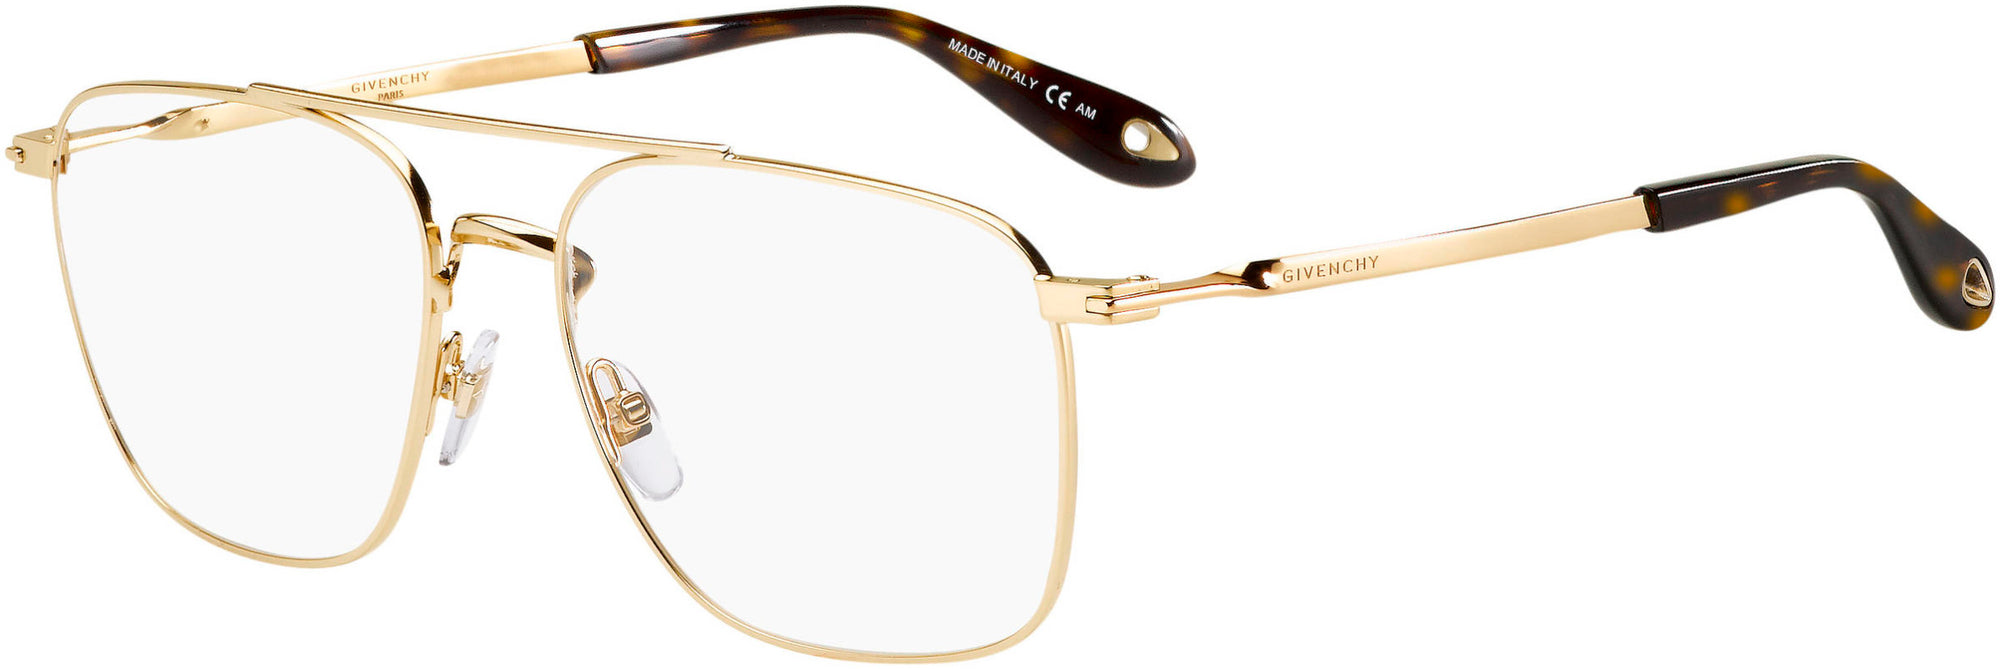 Givenchy GV 0030 Aviator Eyeglasses 0J5G-0J5G  Gold (00 Demo Lens)